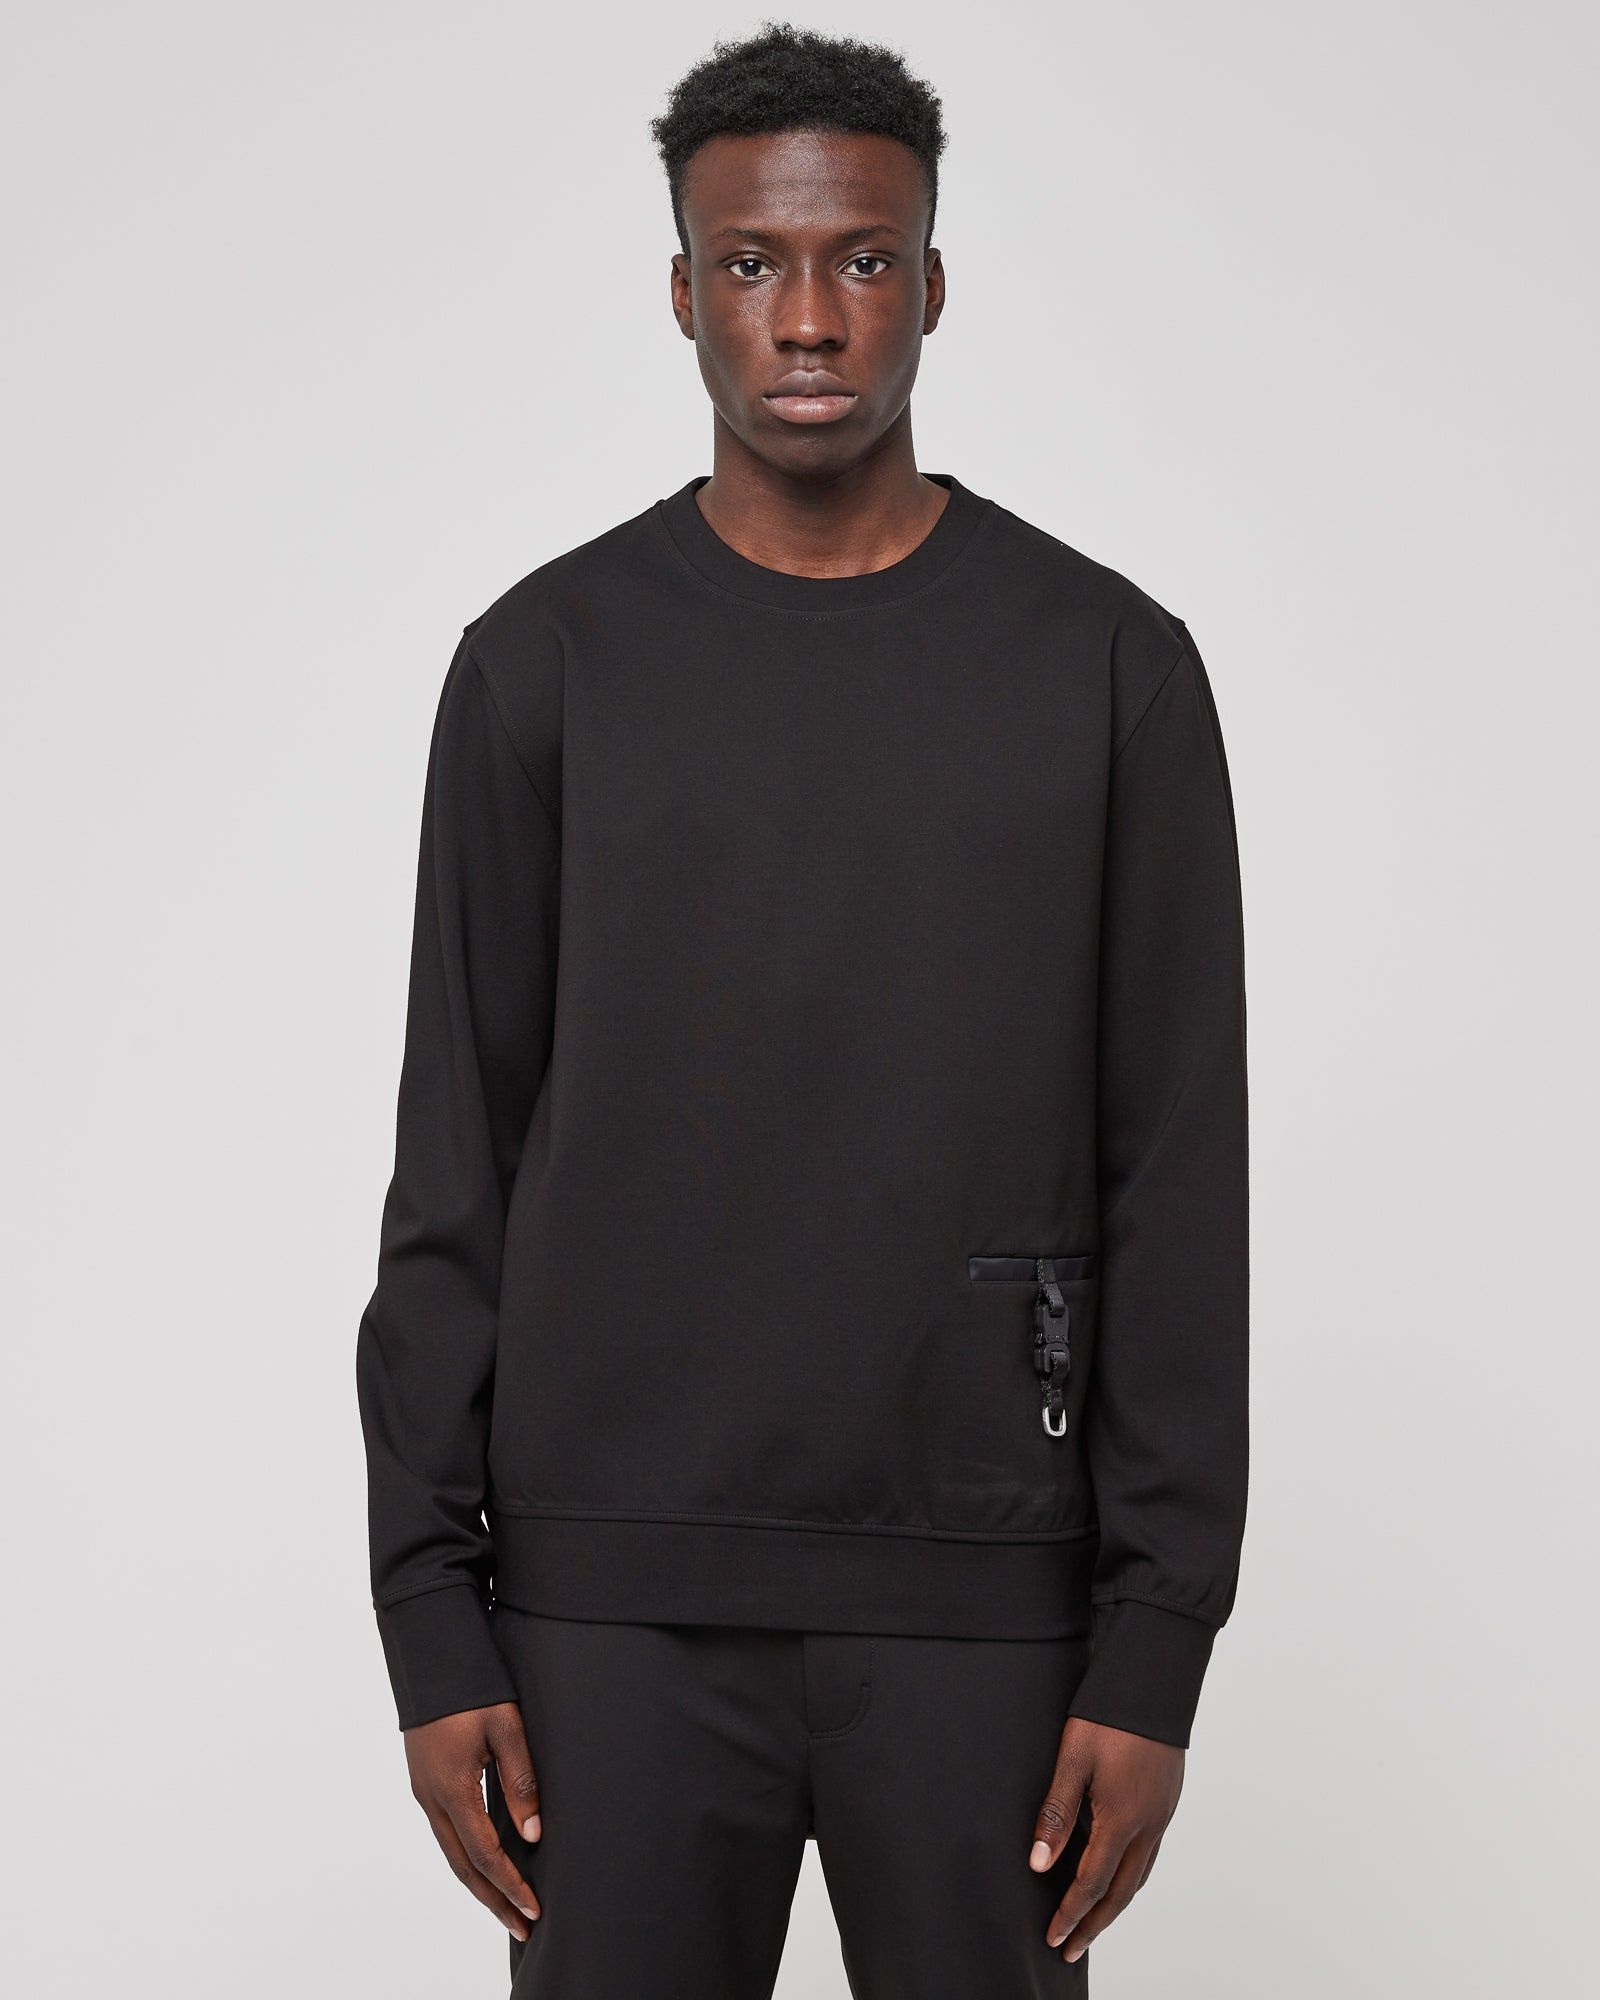 Buckle Detail Crewneck in Black